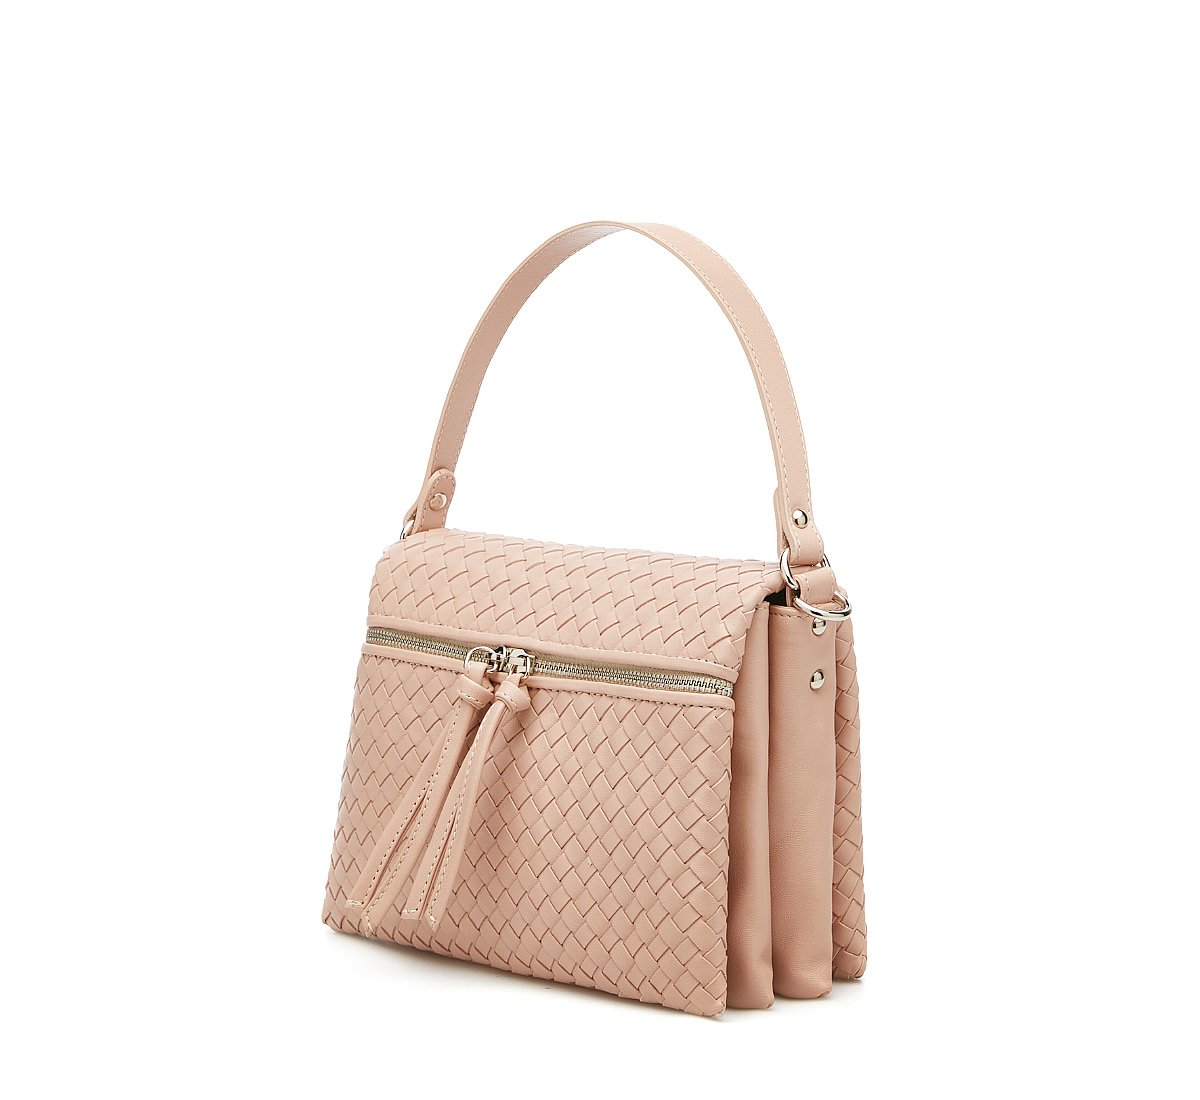 City bag with woven calfskin